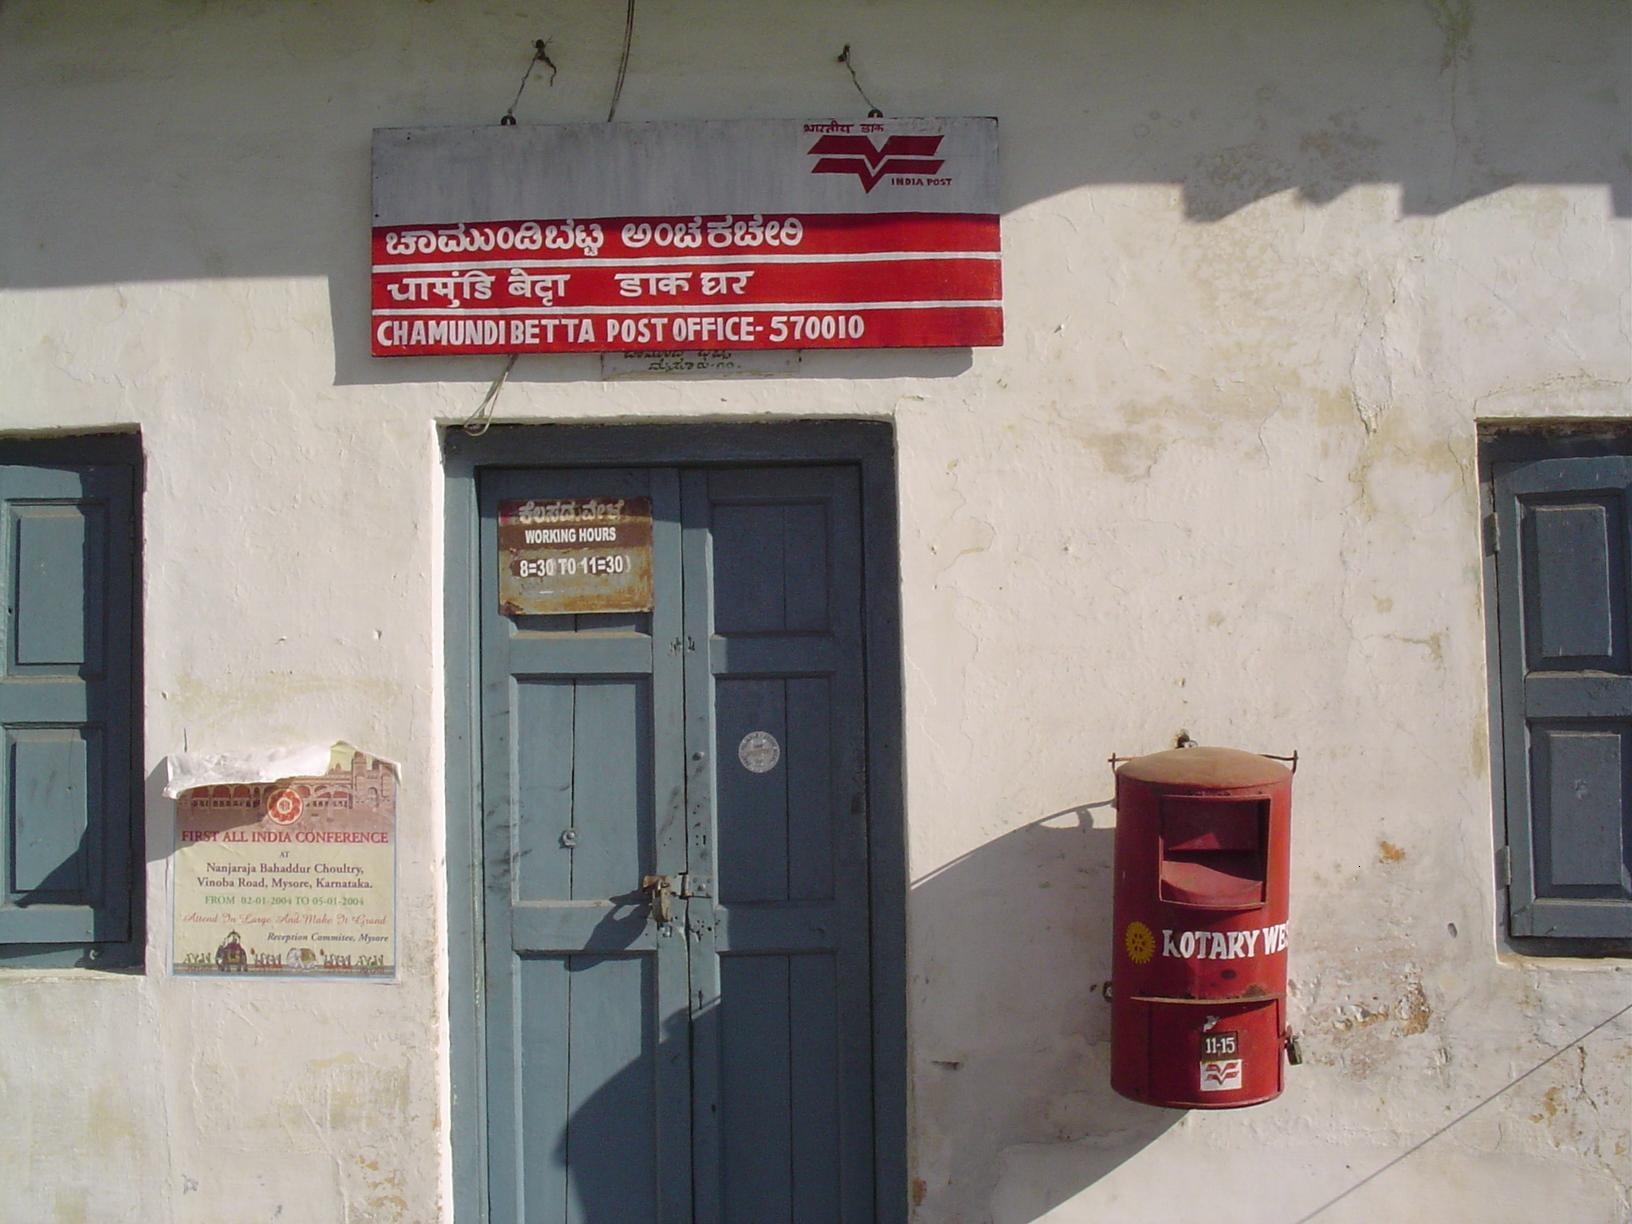 File:An indian post office.JPG - Wikimedia Commons